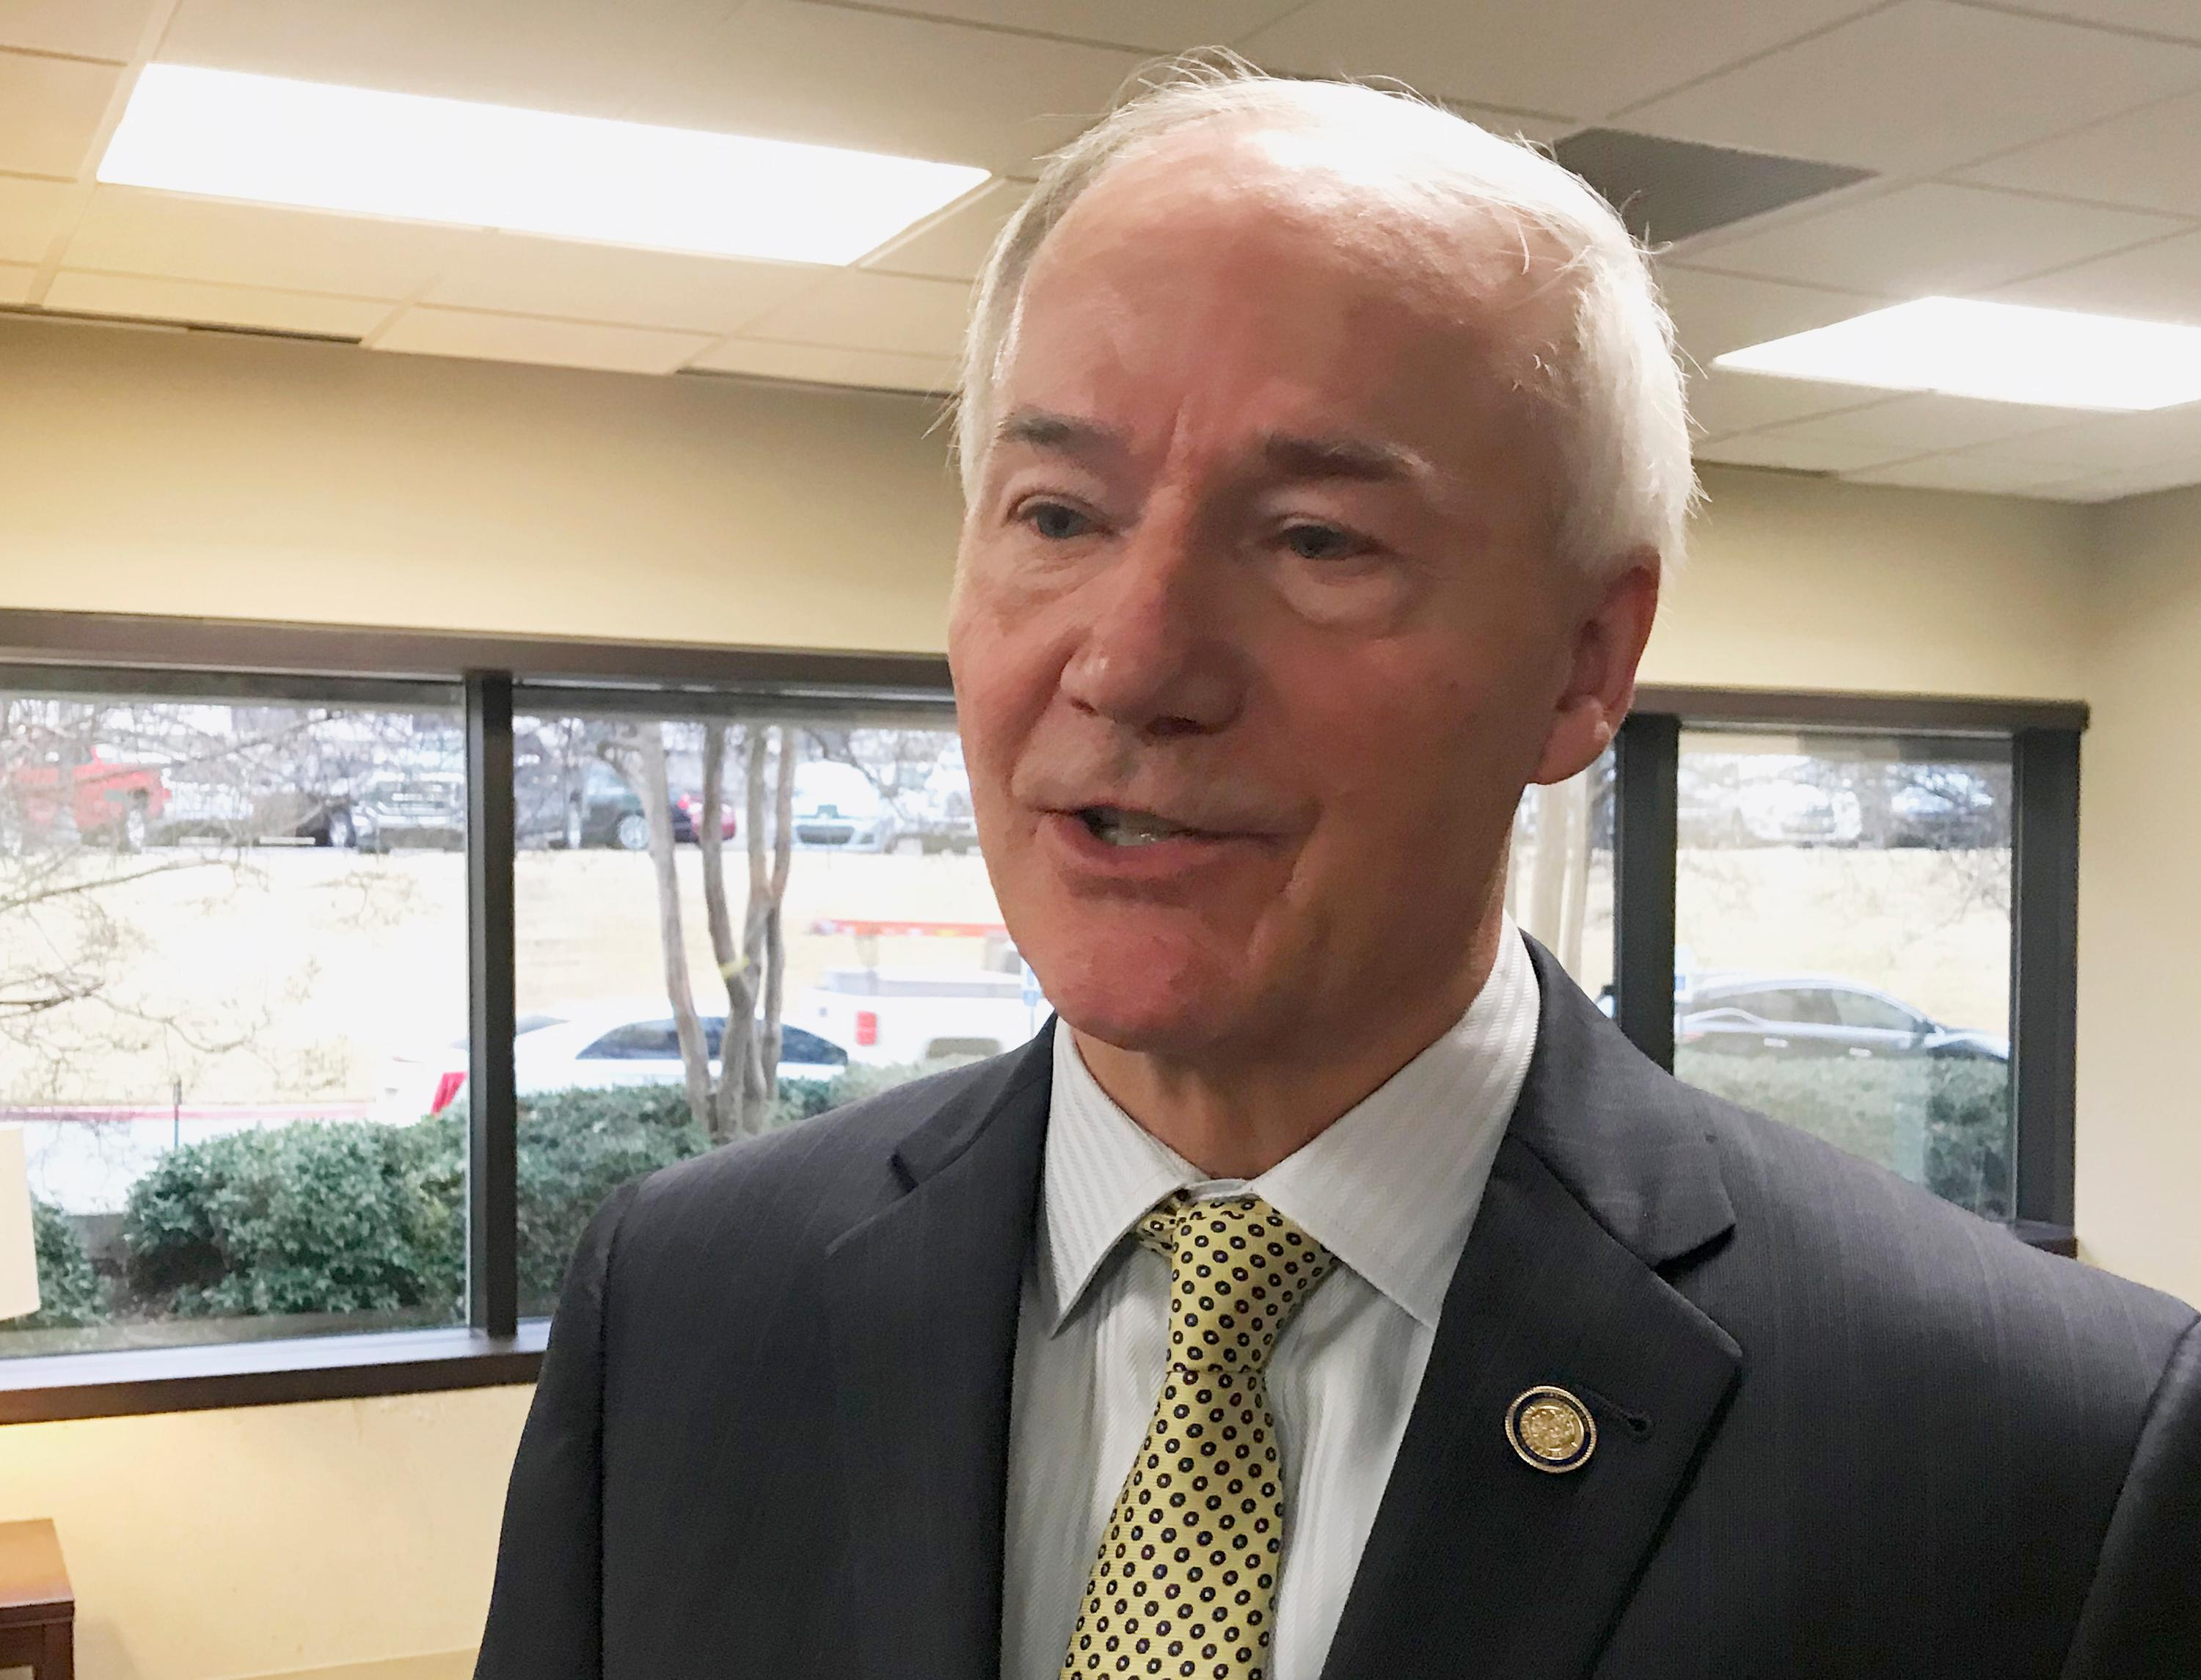 =FILE - In this Jan. 9, 2018, file photo, Arkansas Gov. Asa Hutchinson speaks to reporters in Little Rock, Ark., about his proposed budget for the coming fiscal year. The Republican governor has proposed adding a work requirement to the state's hybrid Medicaid expansion. GOP leaders from several states are cheering the Trump administration's decision to allow such requirements for Medicaid. (AP Photo/Andrew DeMillo, File)